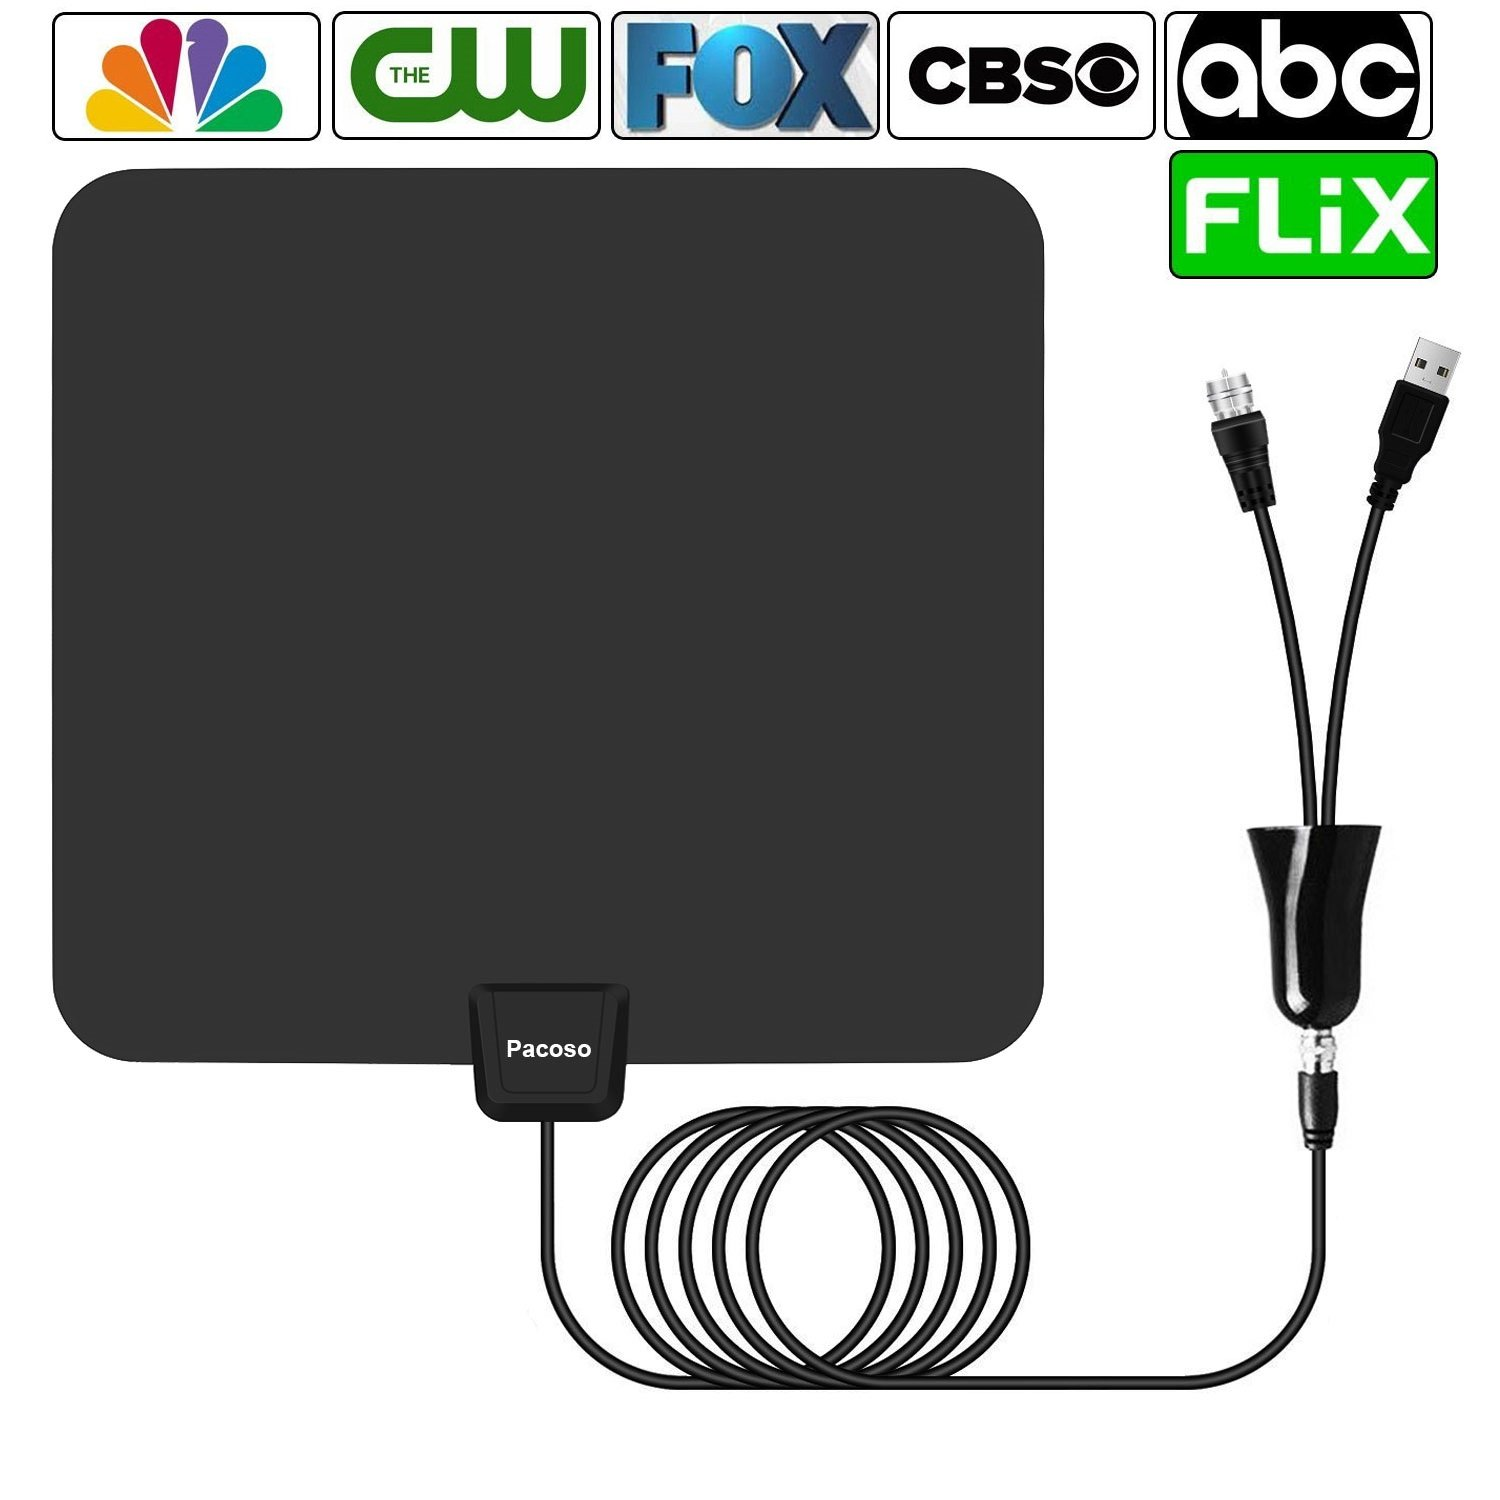 Antenna,Pacoso 75 Mile Range Amplified TV Antenna with Detachable Amplifier Signal Booster,2018 New Version Digital Antenna Local Broadcast 4K/HD/VHF/UHF Signal TV Channels for Smart Television. by Pacoso